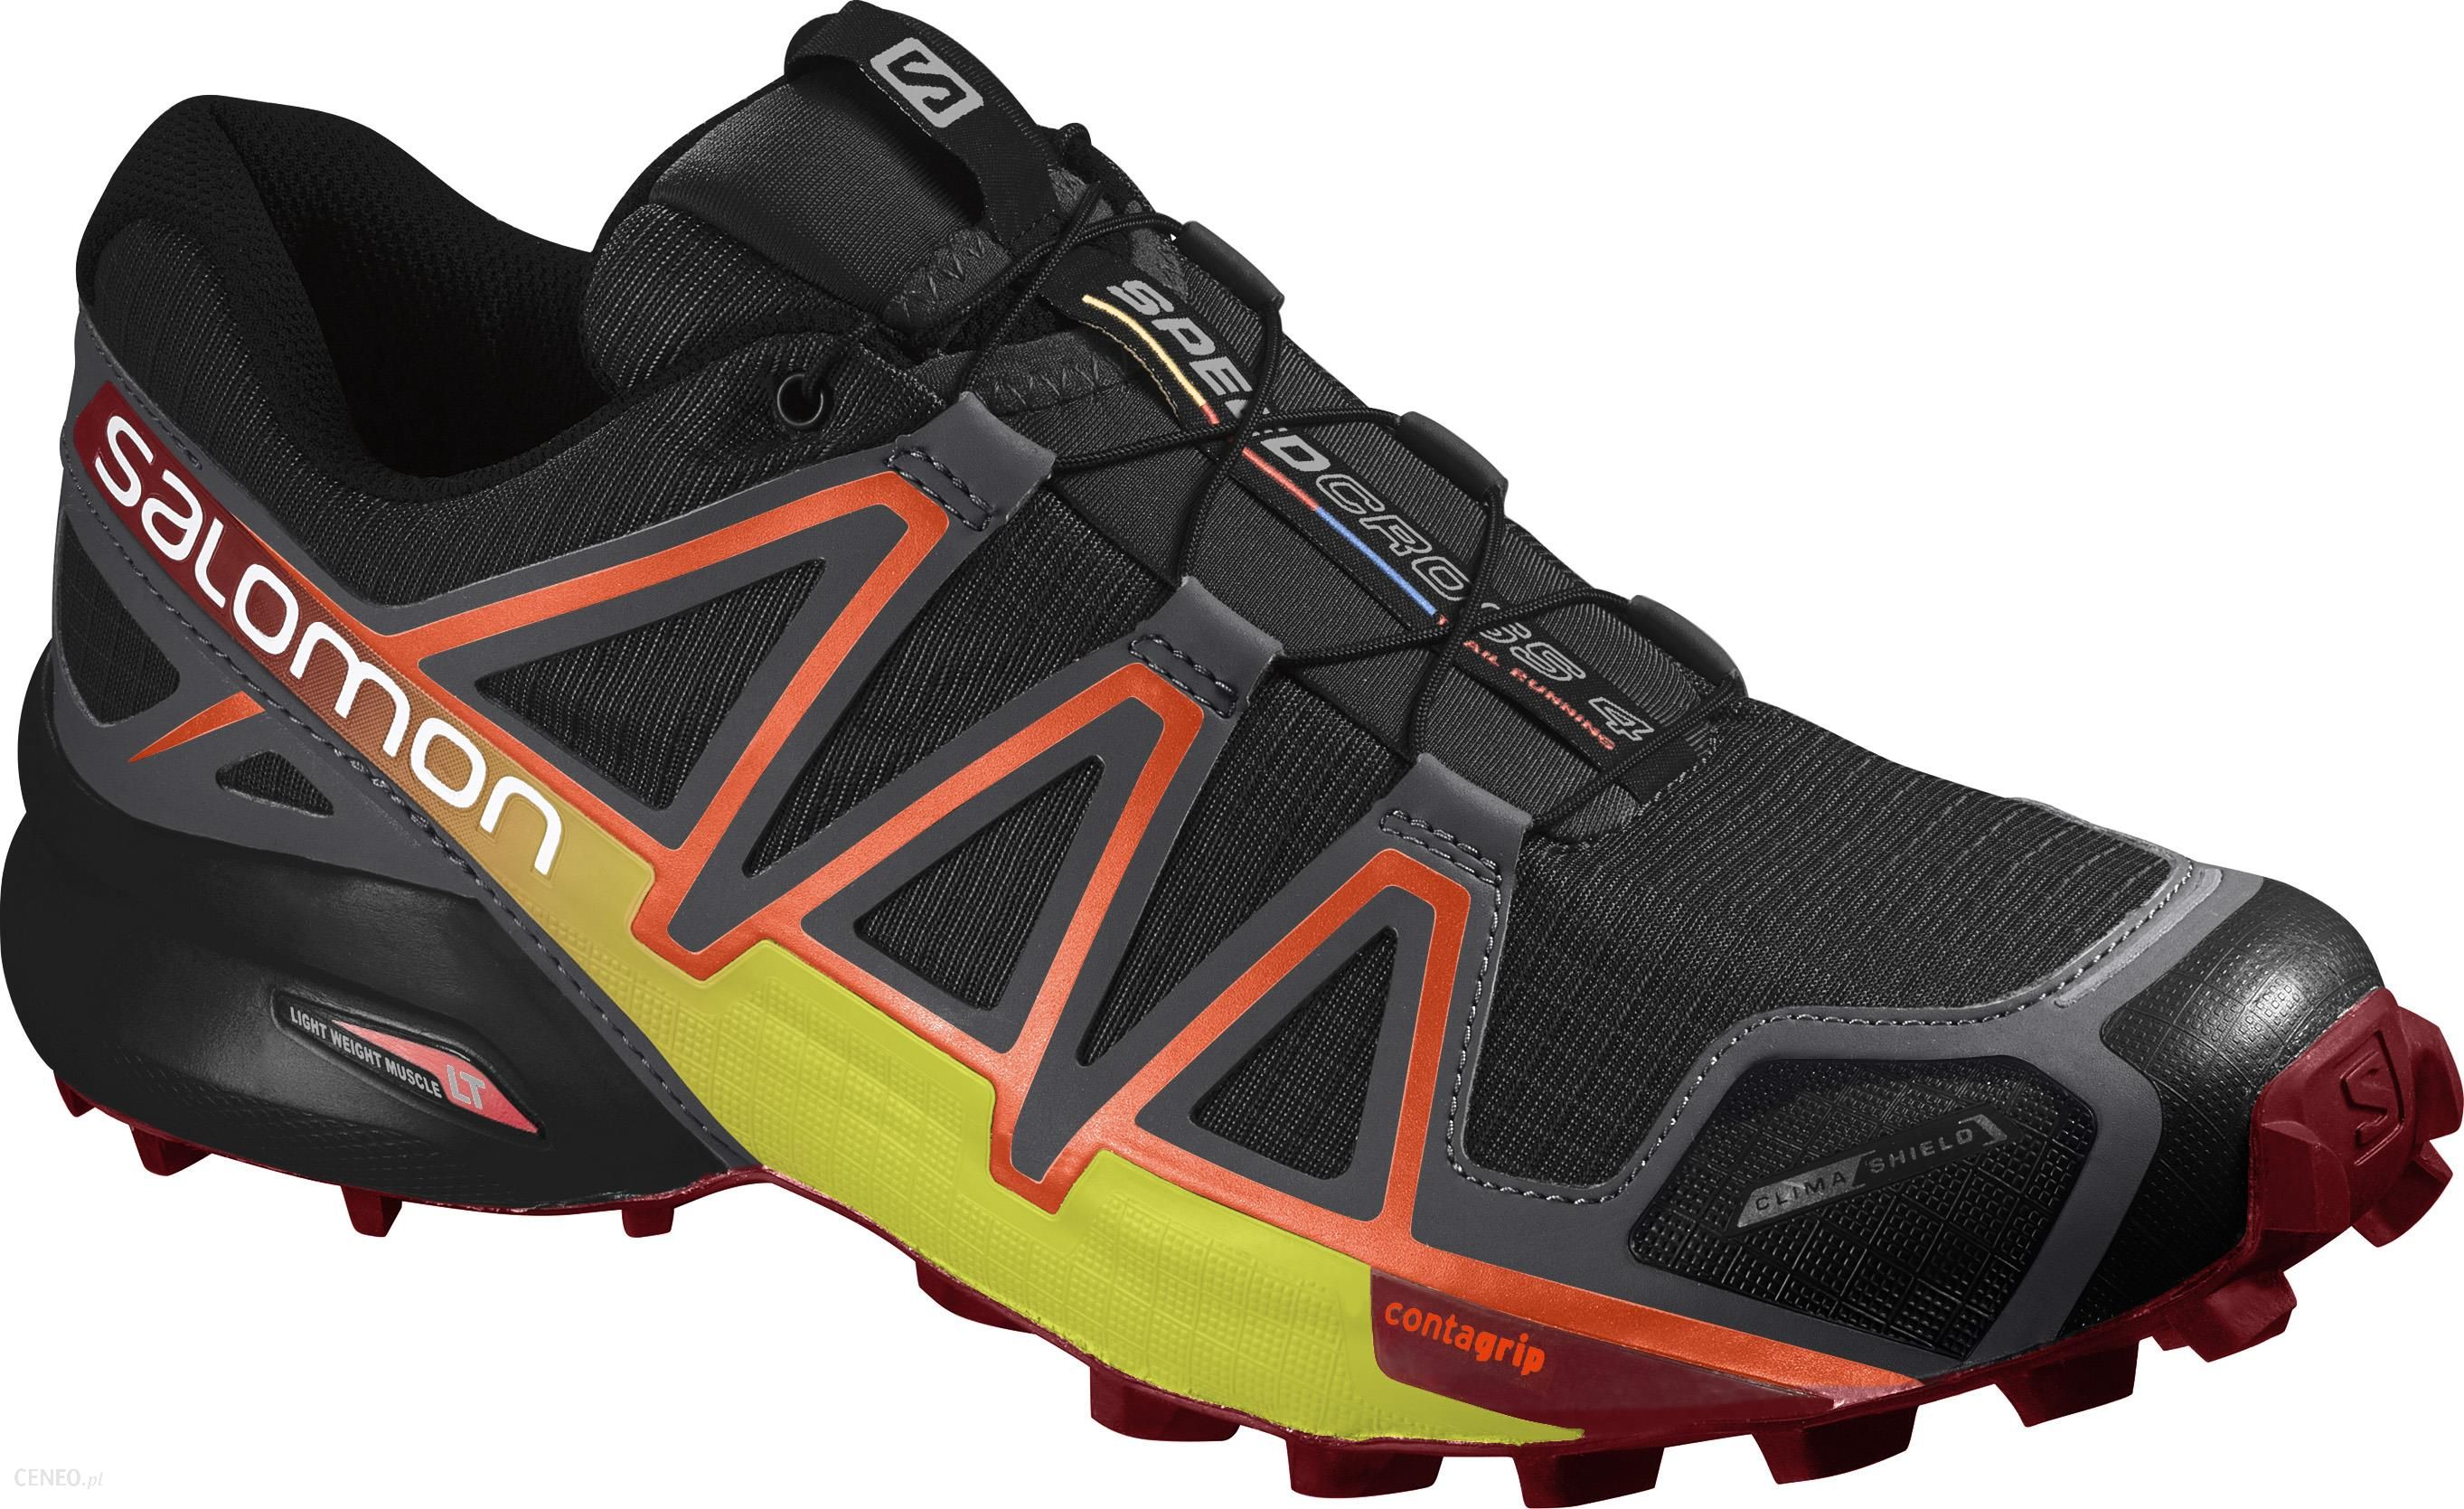 Salomon Speedcross 3 CS Men's Outdoor Shoes Breathable